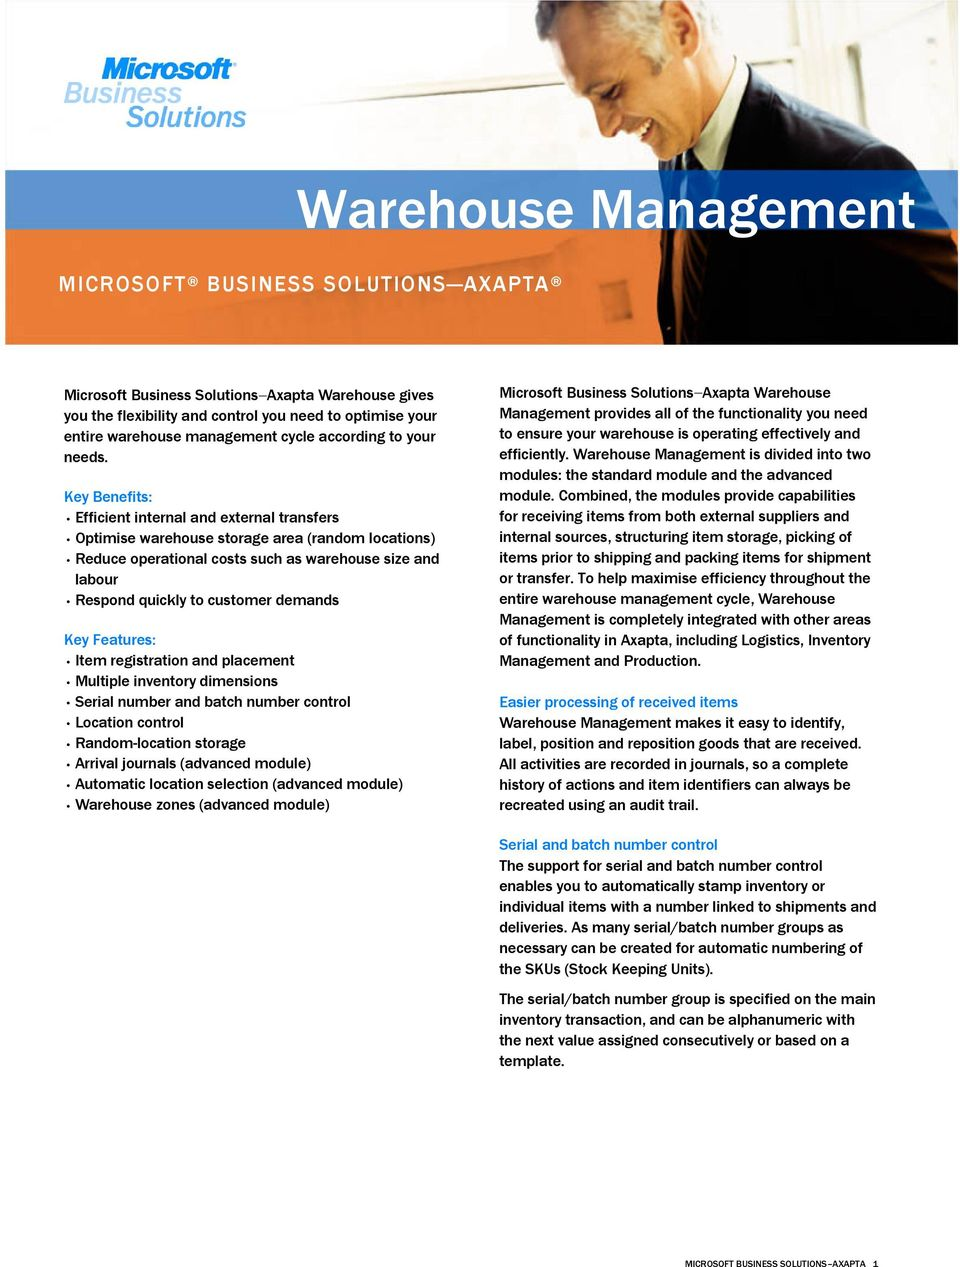 Key Benefits: Efficient internal and external transfers Optimise warehouse storage area (random locations) Reduce operational costs such as warehouse size and labour Respond quickly to customer